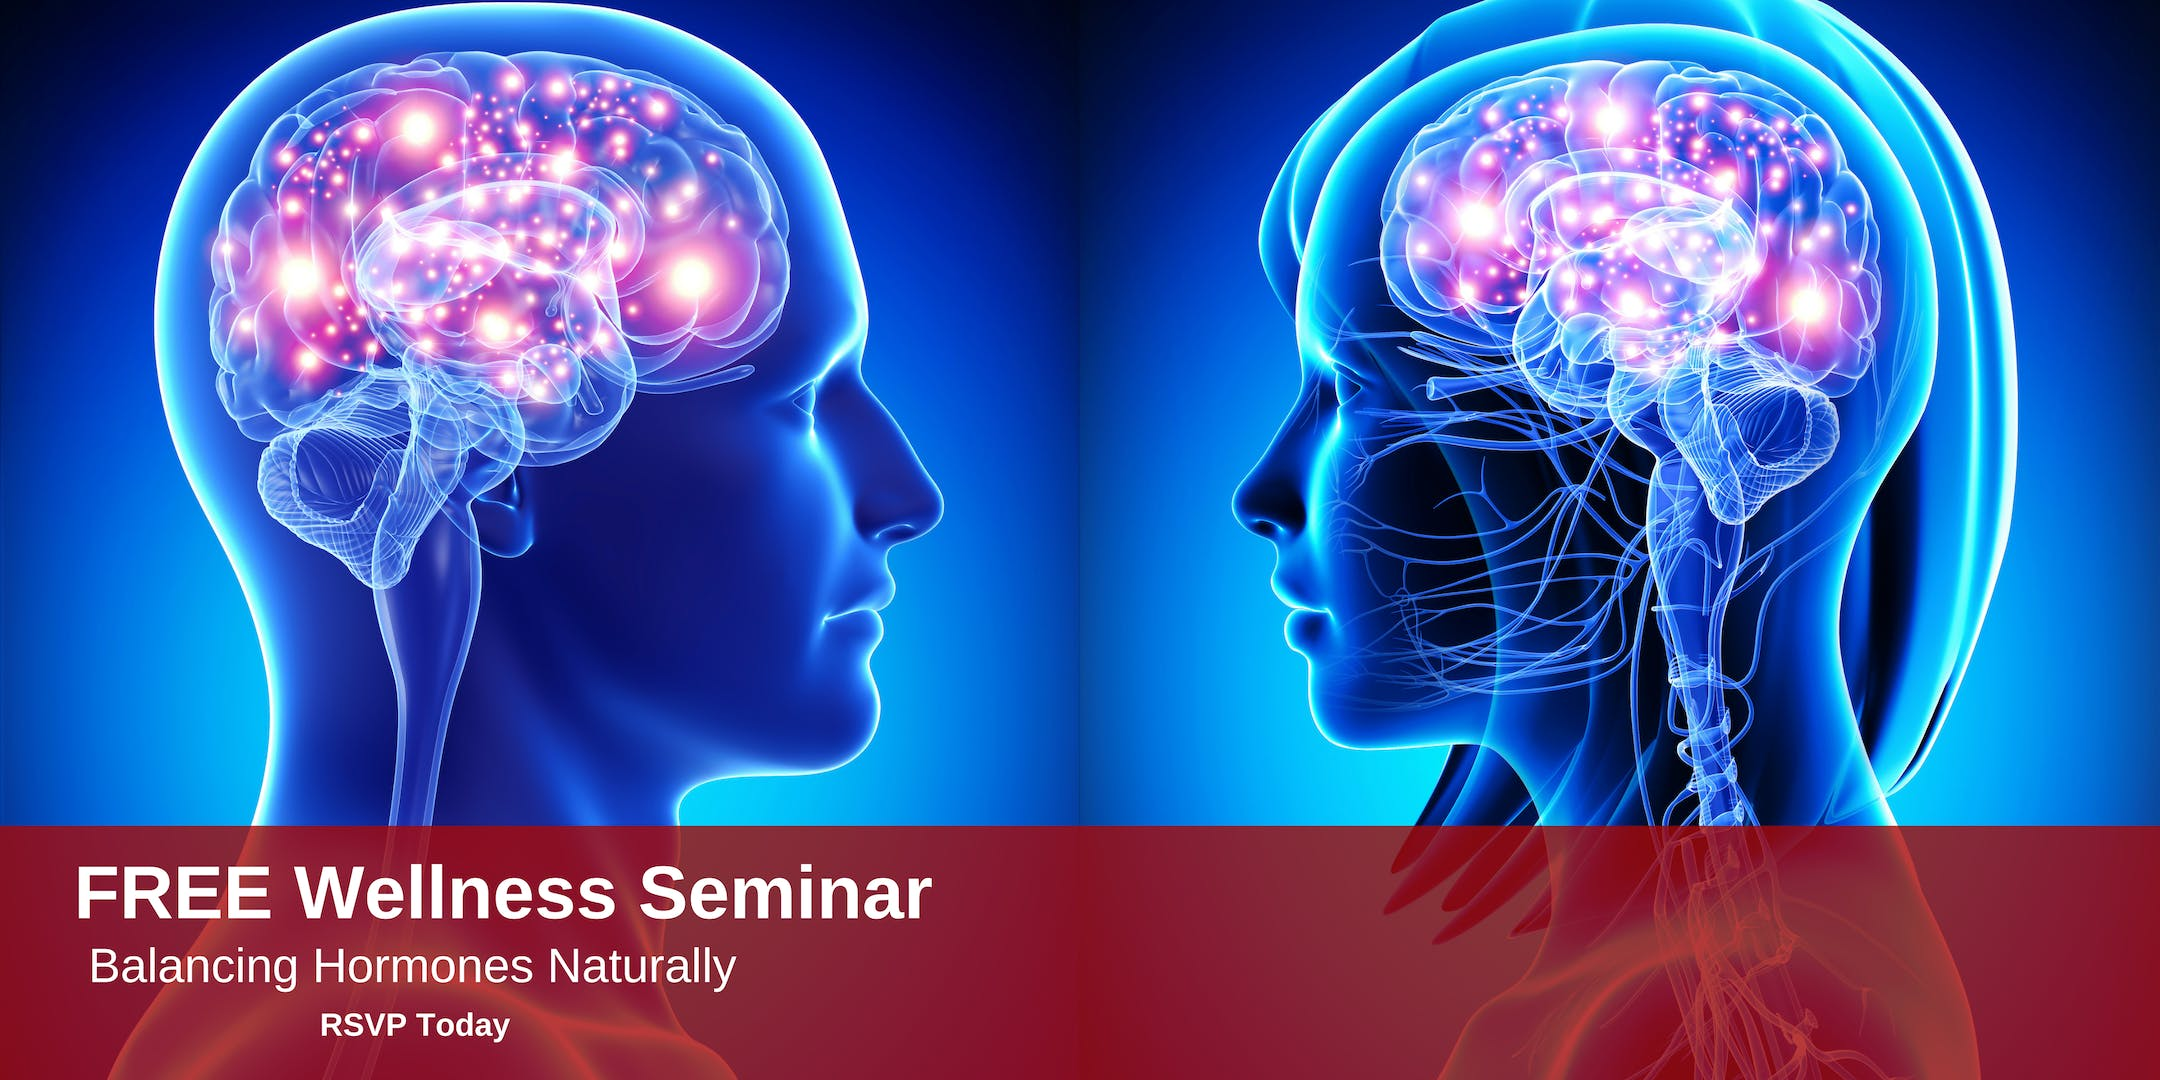 Free Seminar: Come Learn About Balancing Hormones Naturally